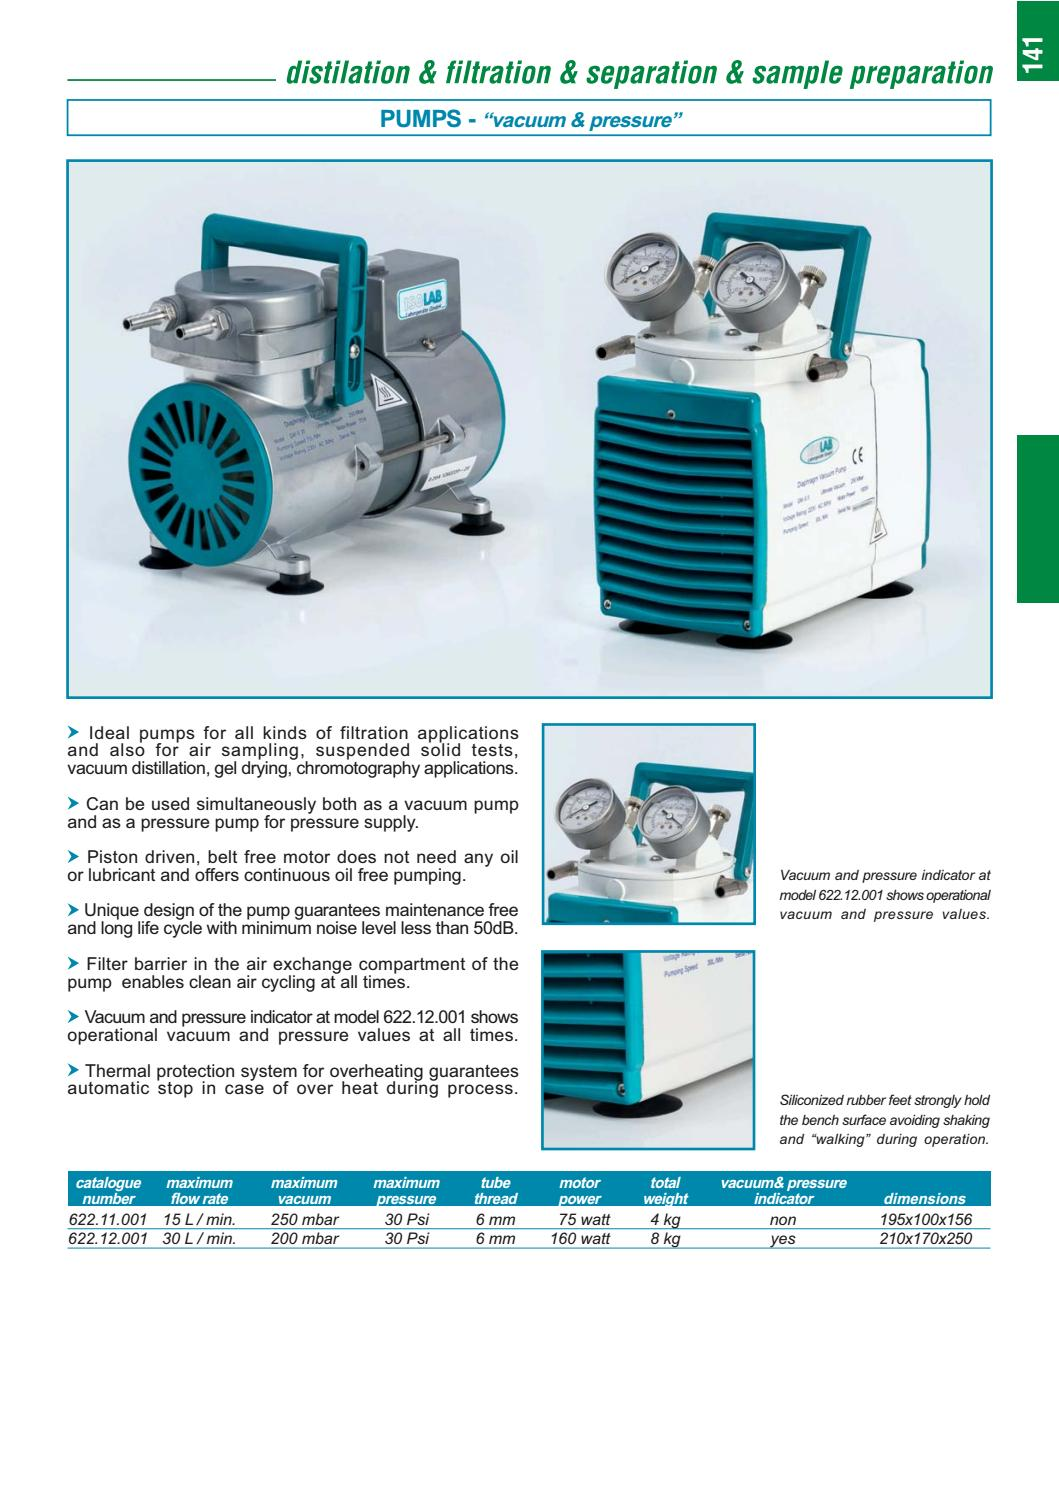 ISOLAB 2016-2017 Product Catalog by ISOLAB Laborgeräte GmbH